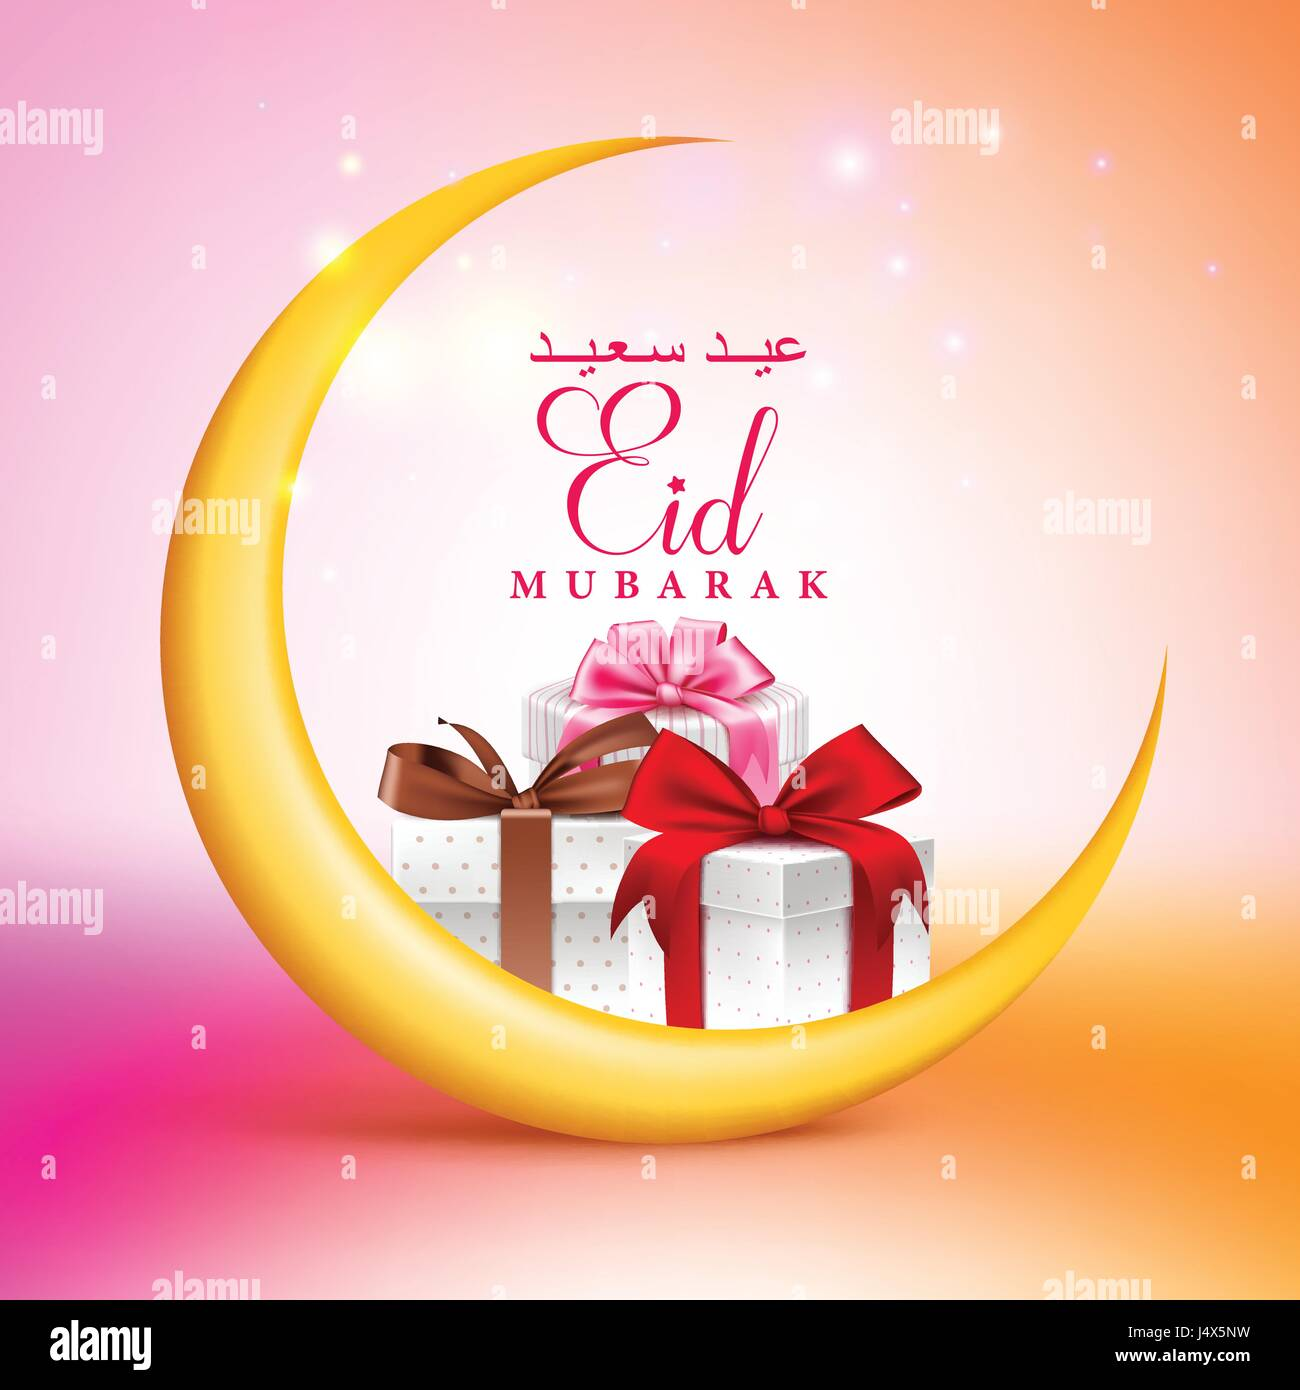 Eid Mubarak Greetings Card Vector Design With Colorful Gifts In A